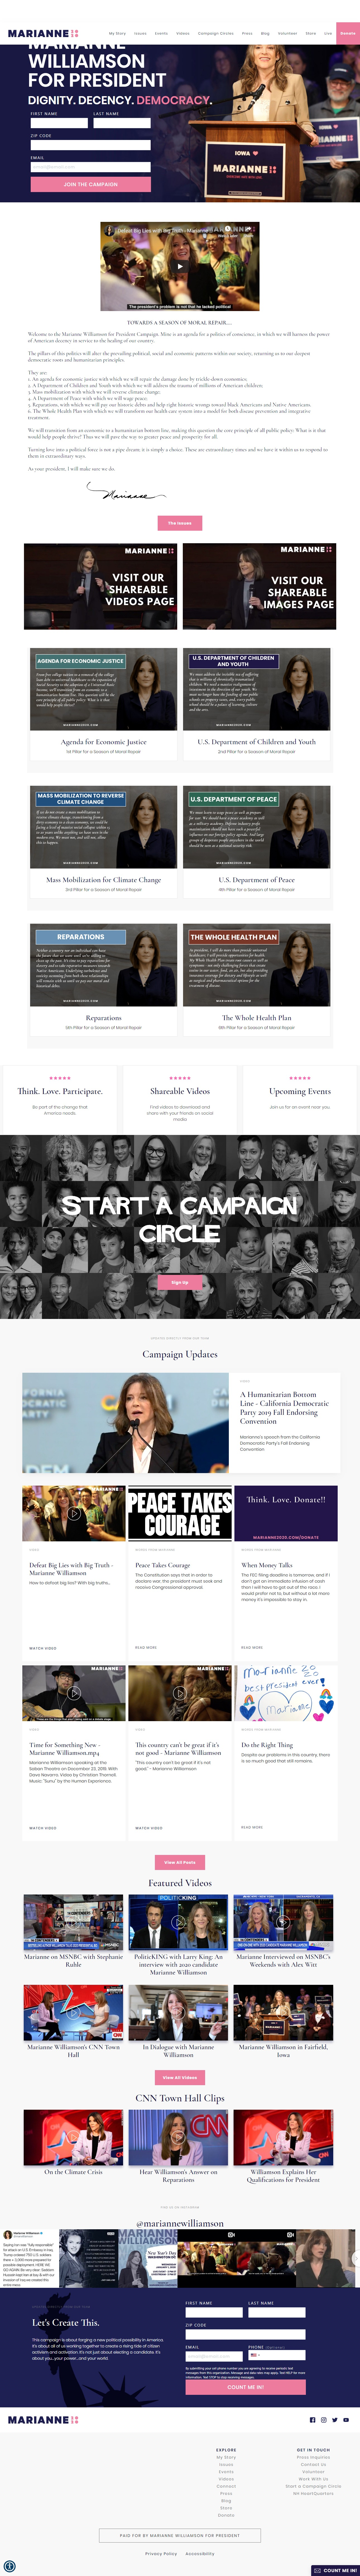 Homepage Snapshot for January 1, 2020: Author Marianne Williamson